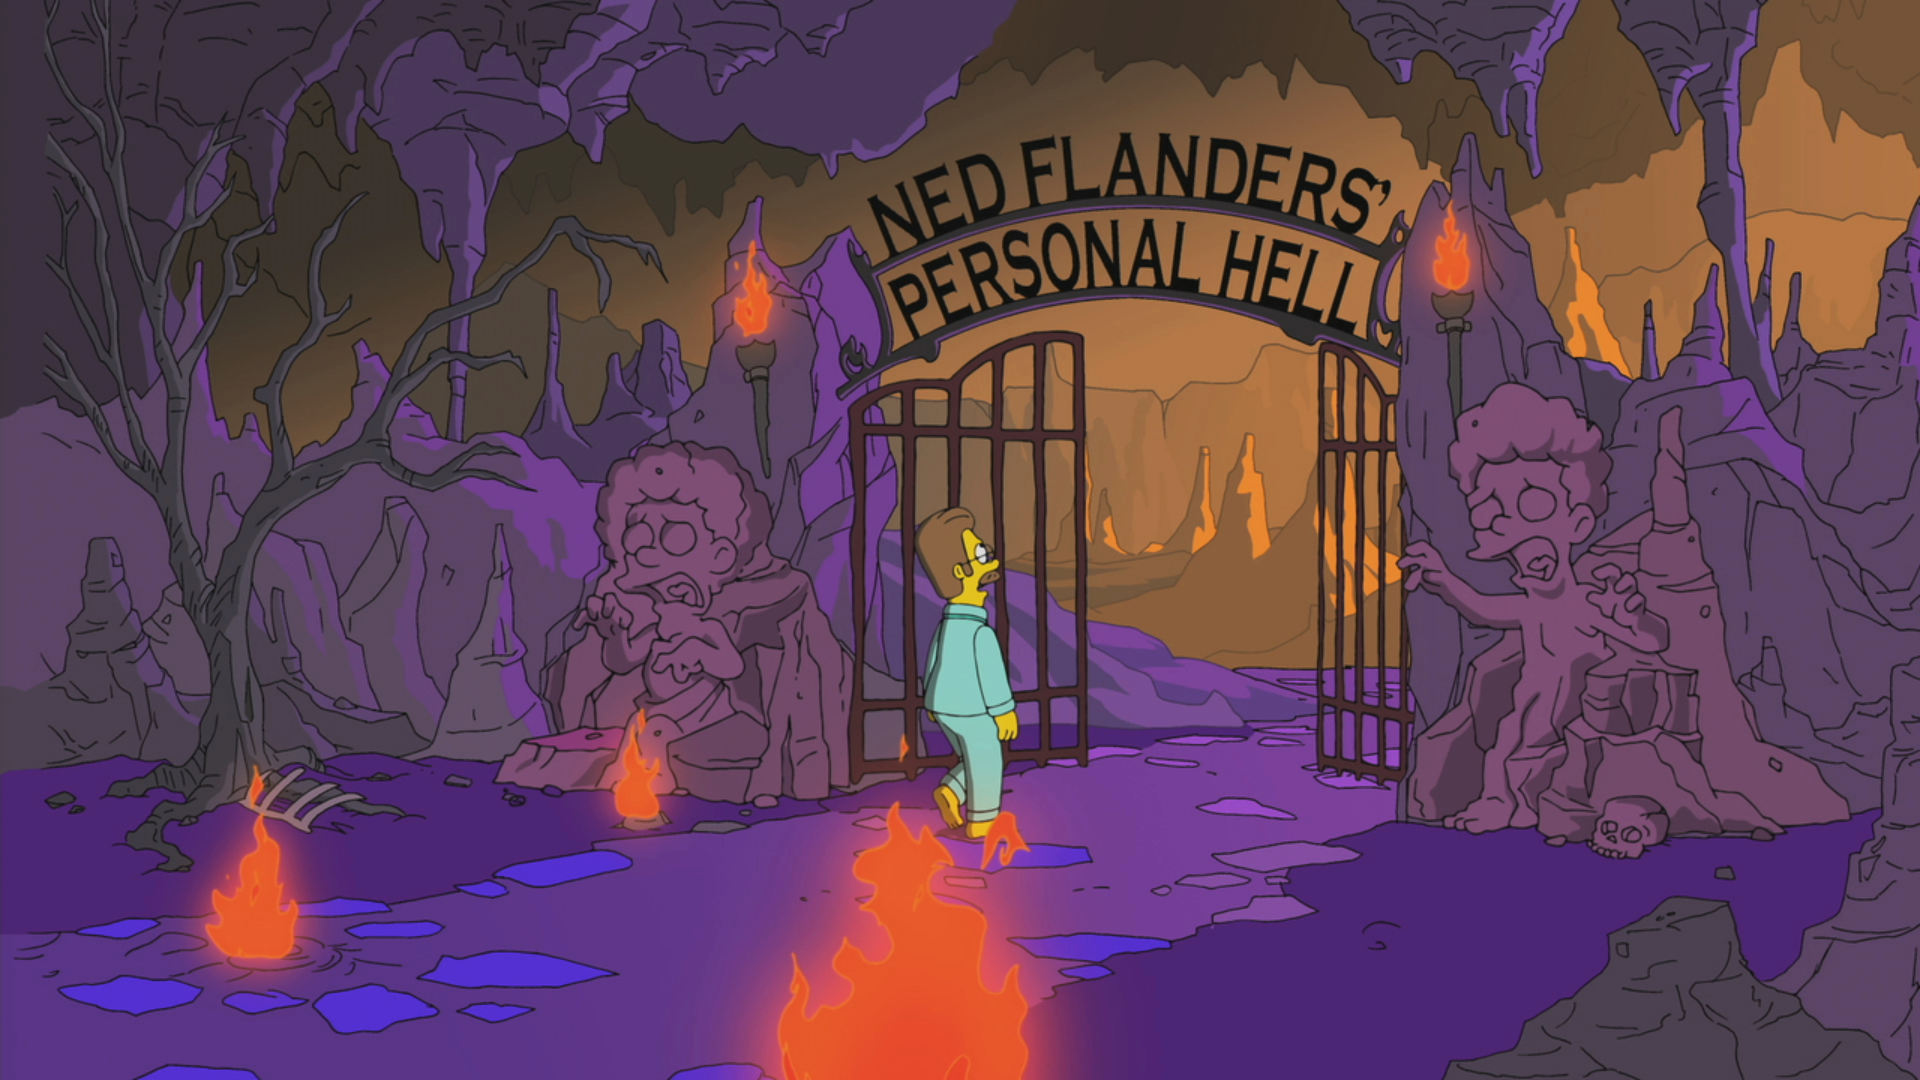 Ned Flanders' Personal Hell